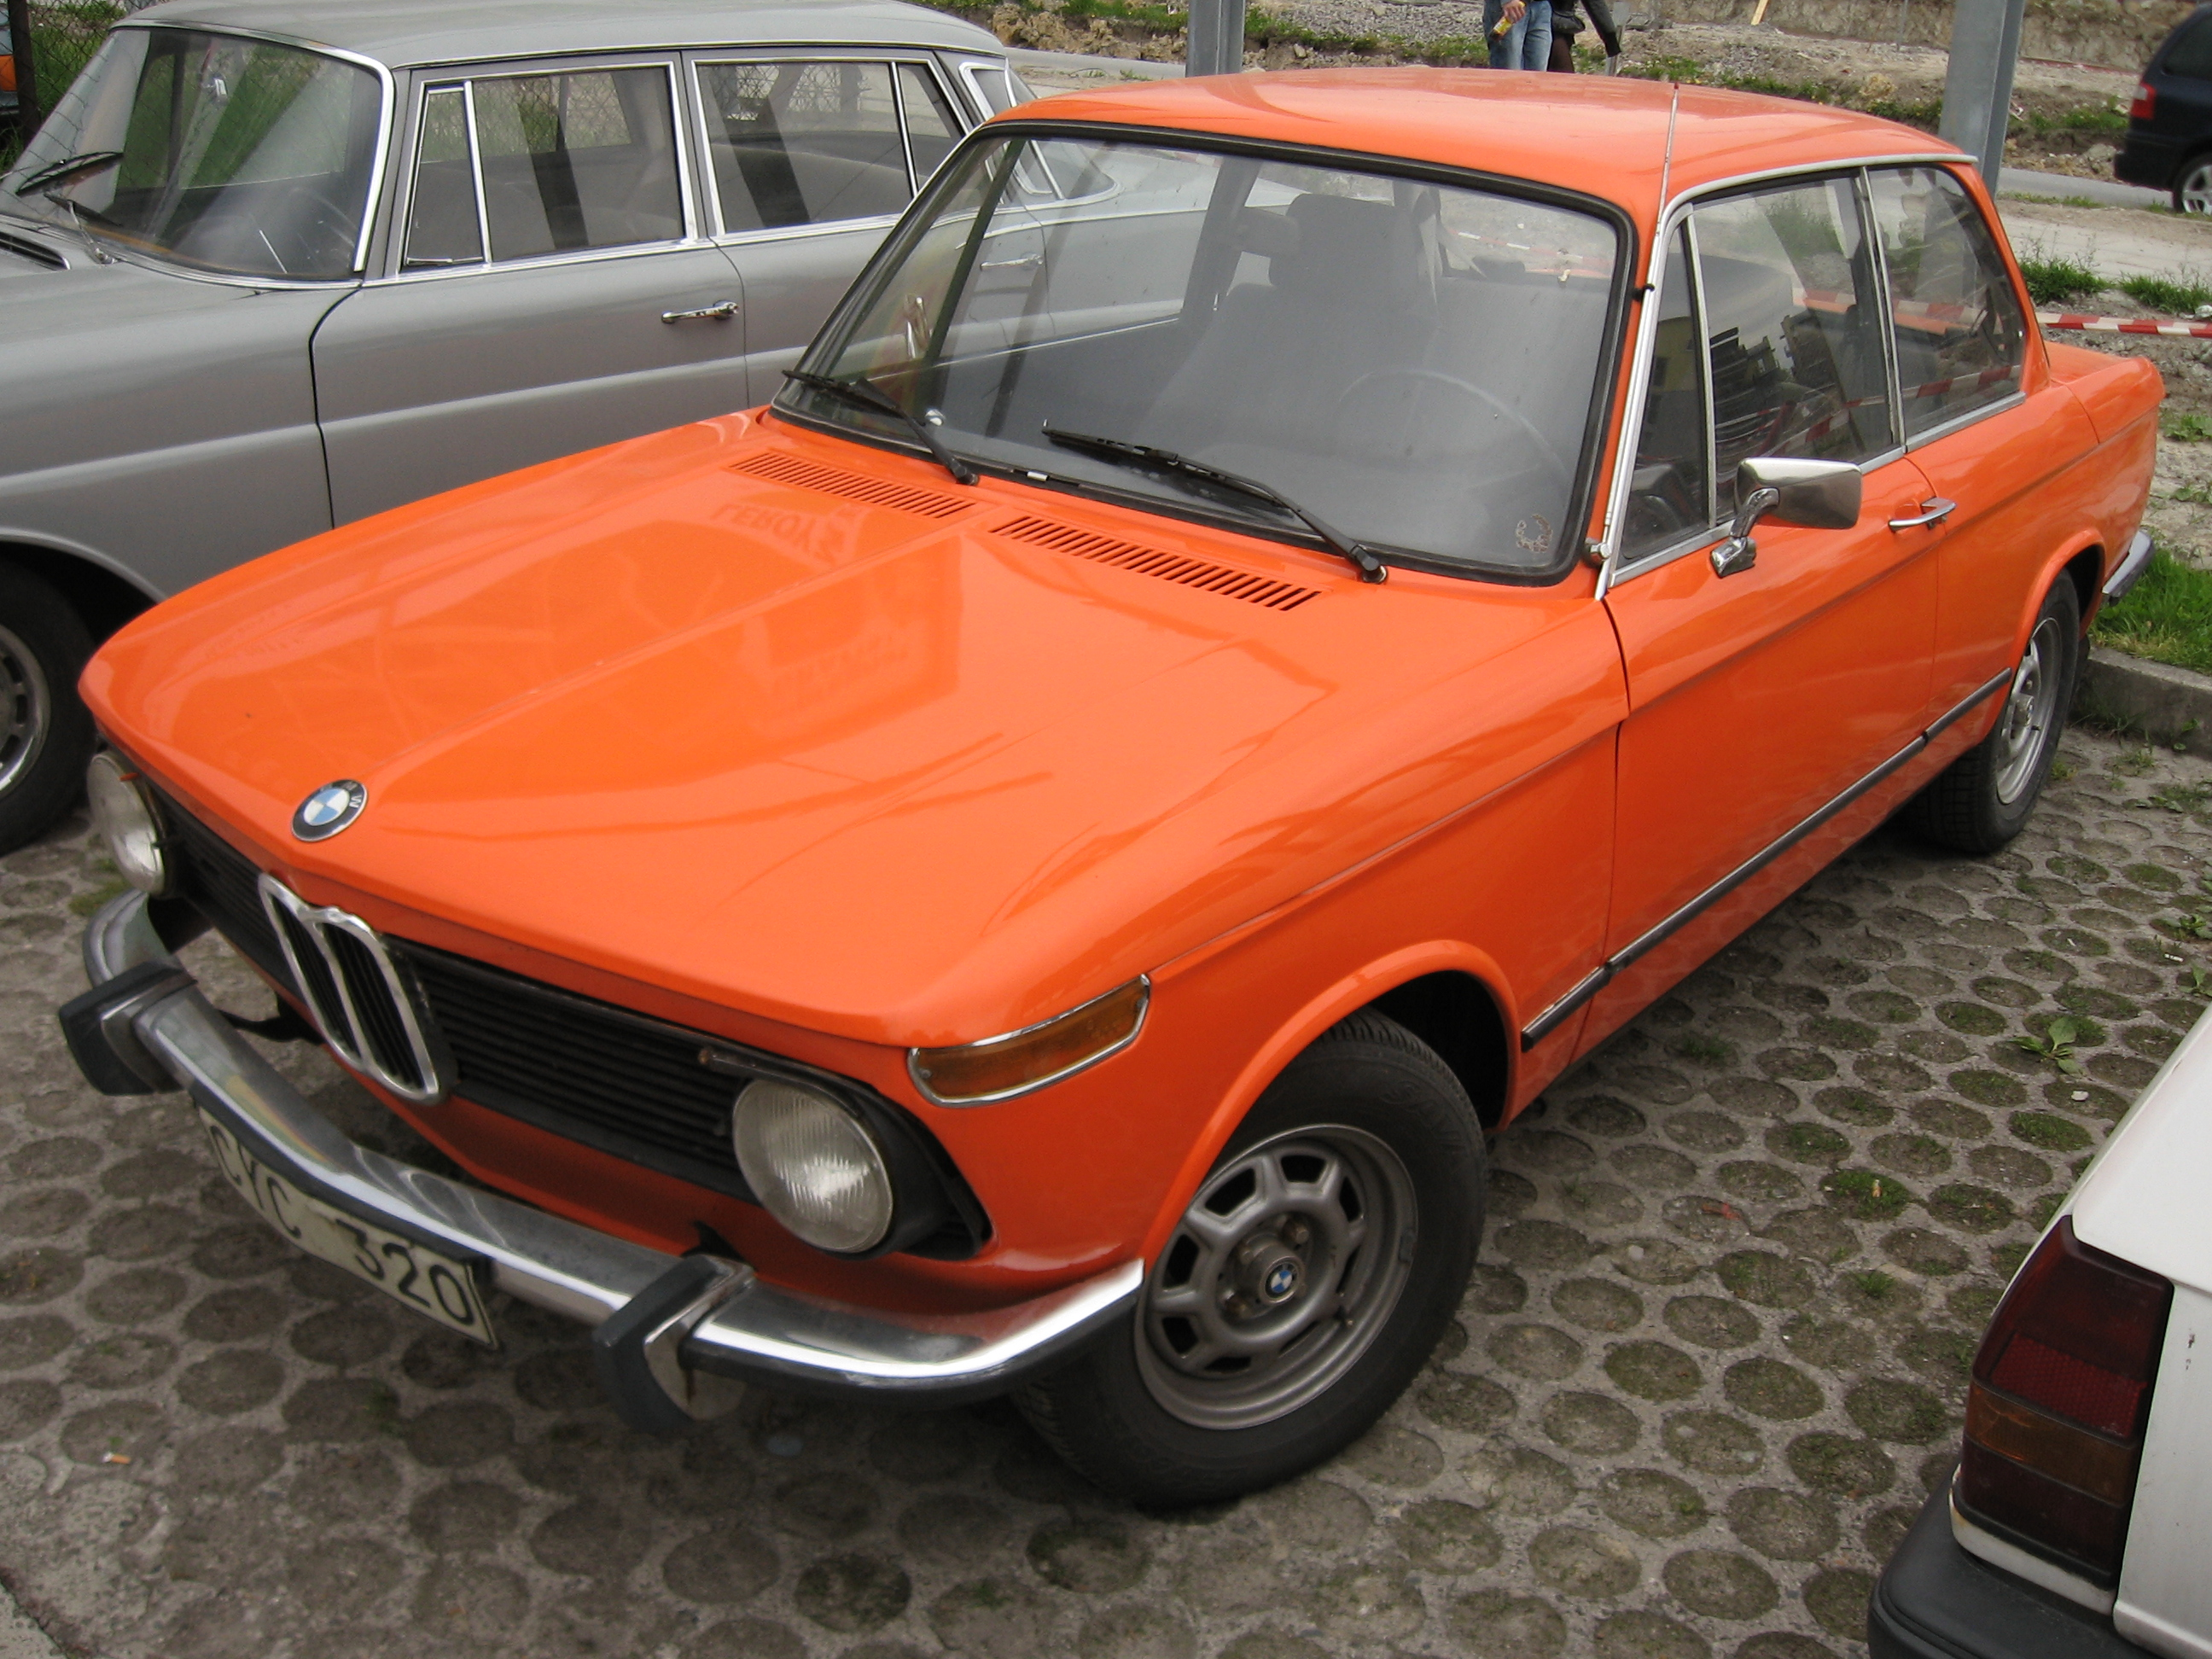 File:Orange BMW 1502 on a parking lot in Kraków (1).jpg